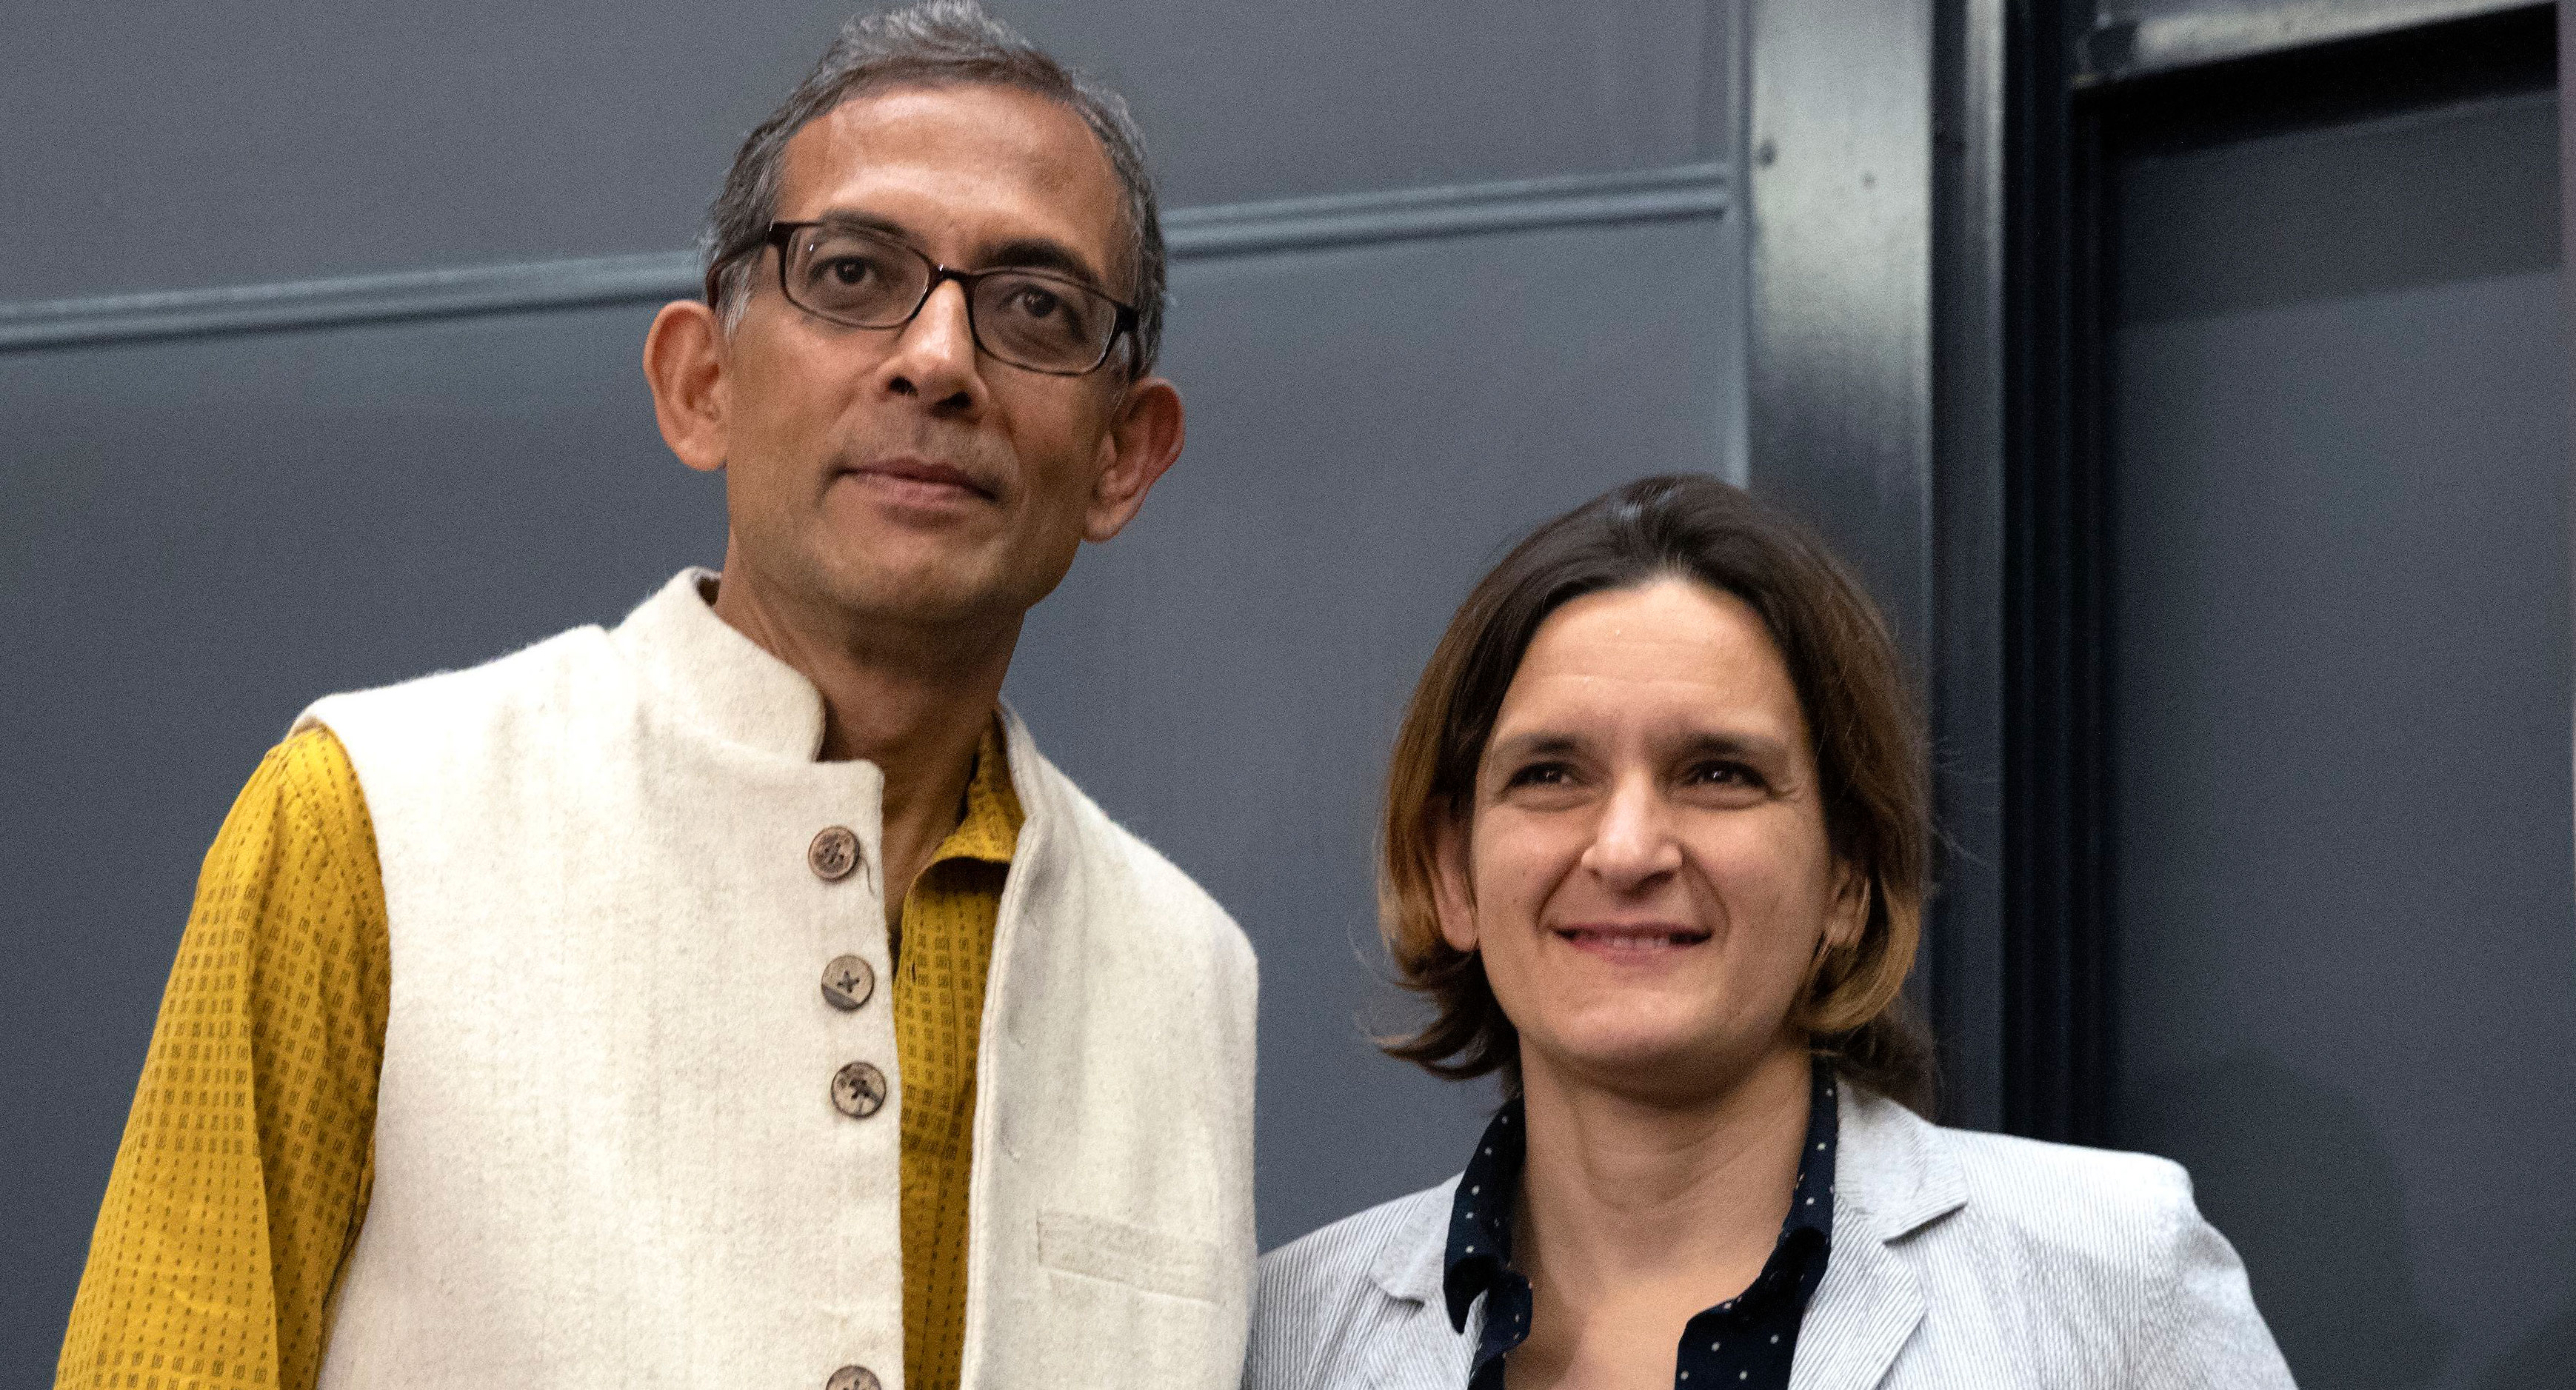 Abhijit Banerjee with Esther Duflo after a news conference at Massachusetts Institute of Technology in Cambridge on October 14, 2019